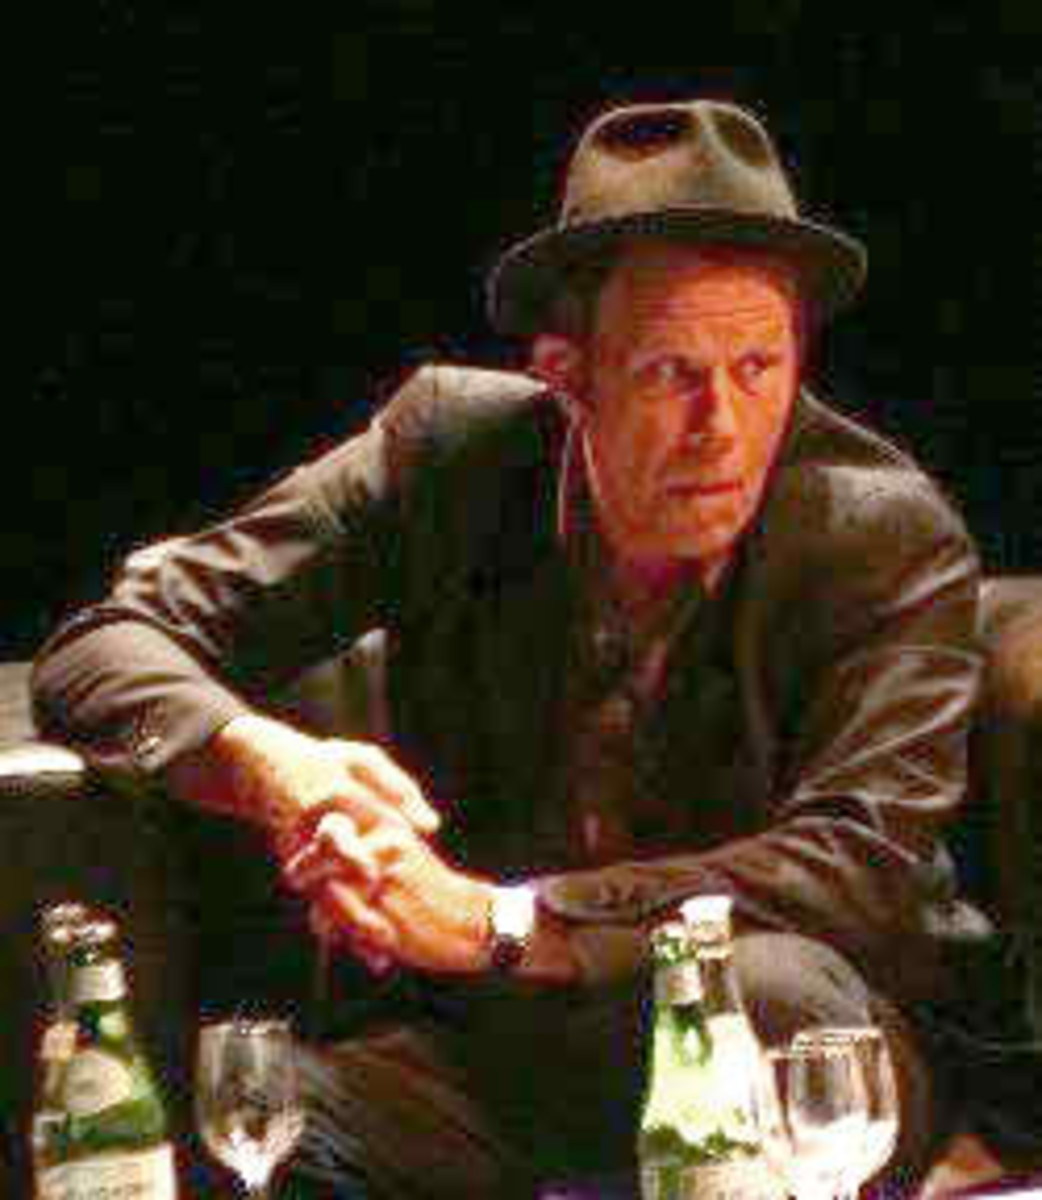 Tom Waits during an interview in Buenos Aires, Argentina, April 2007